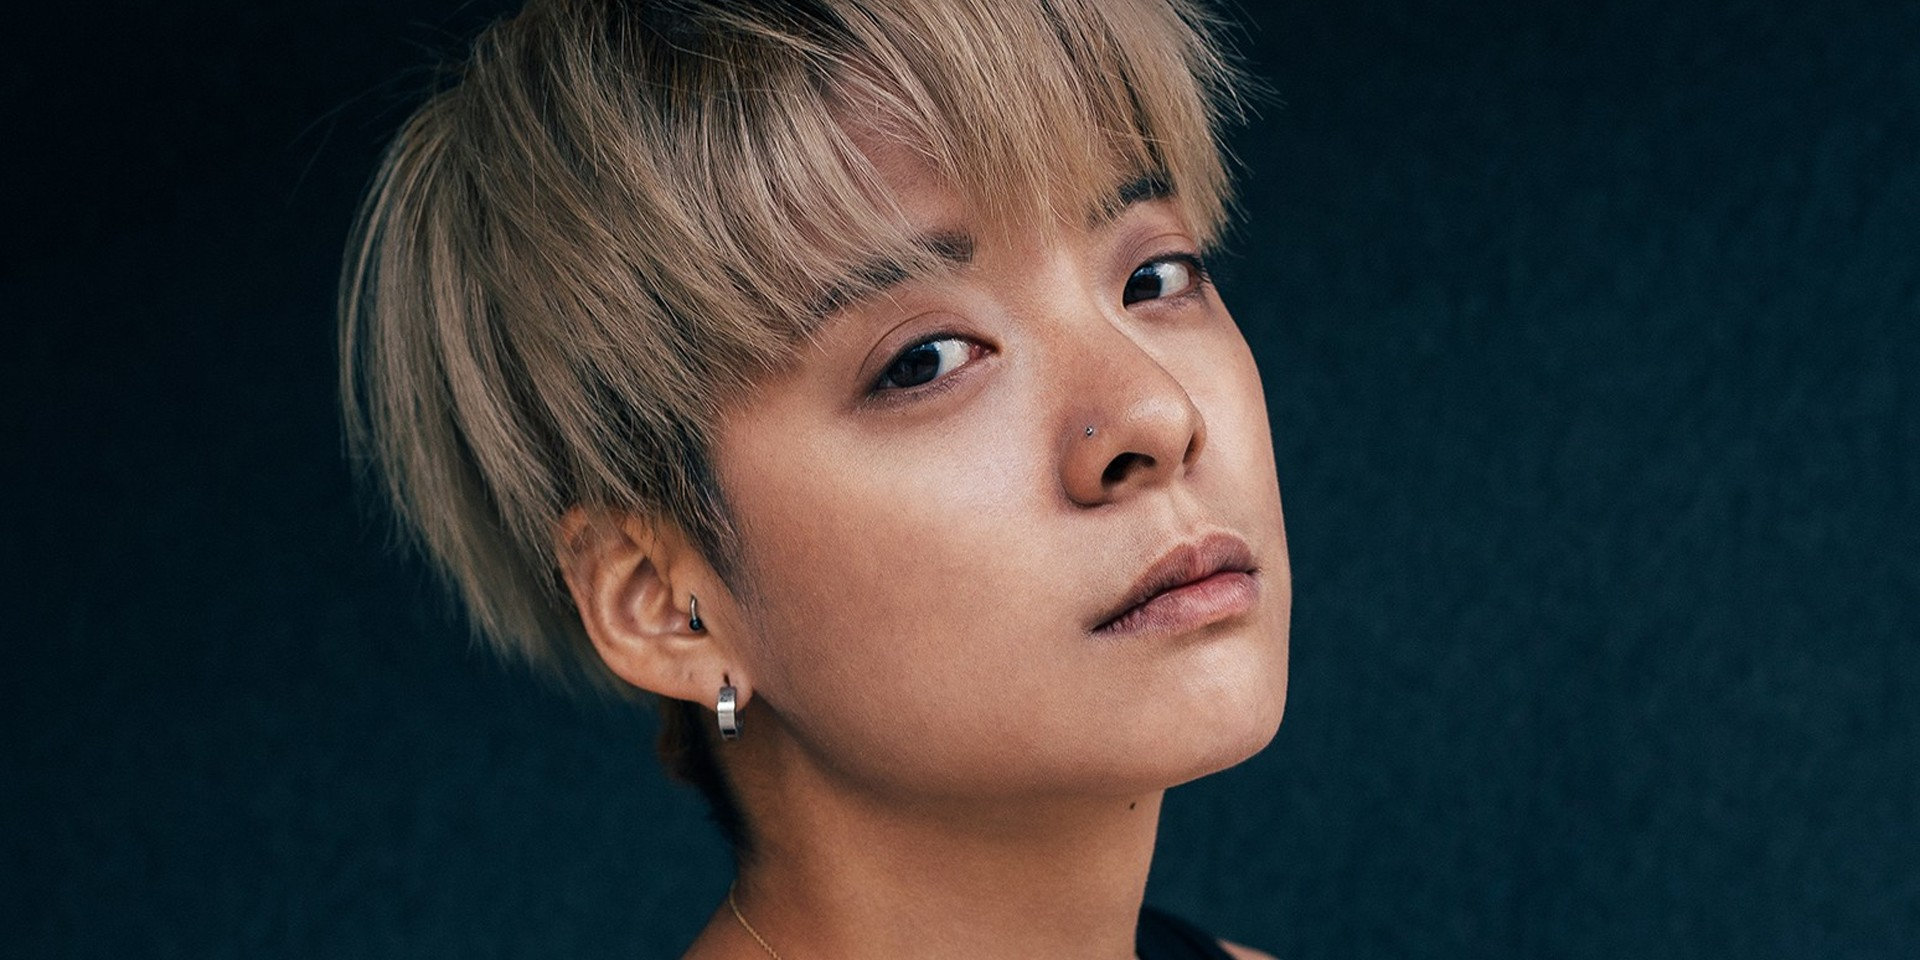 Amber Liu drops back-to-back releases 'blue' and 'vegas' – watch